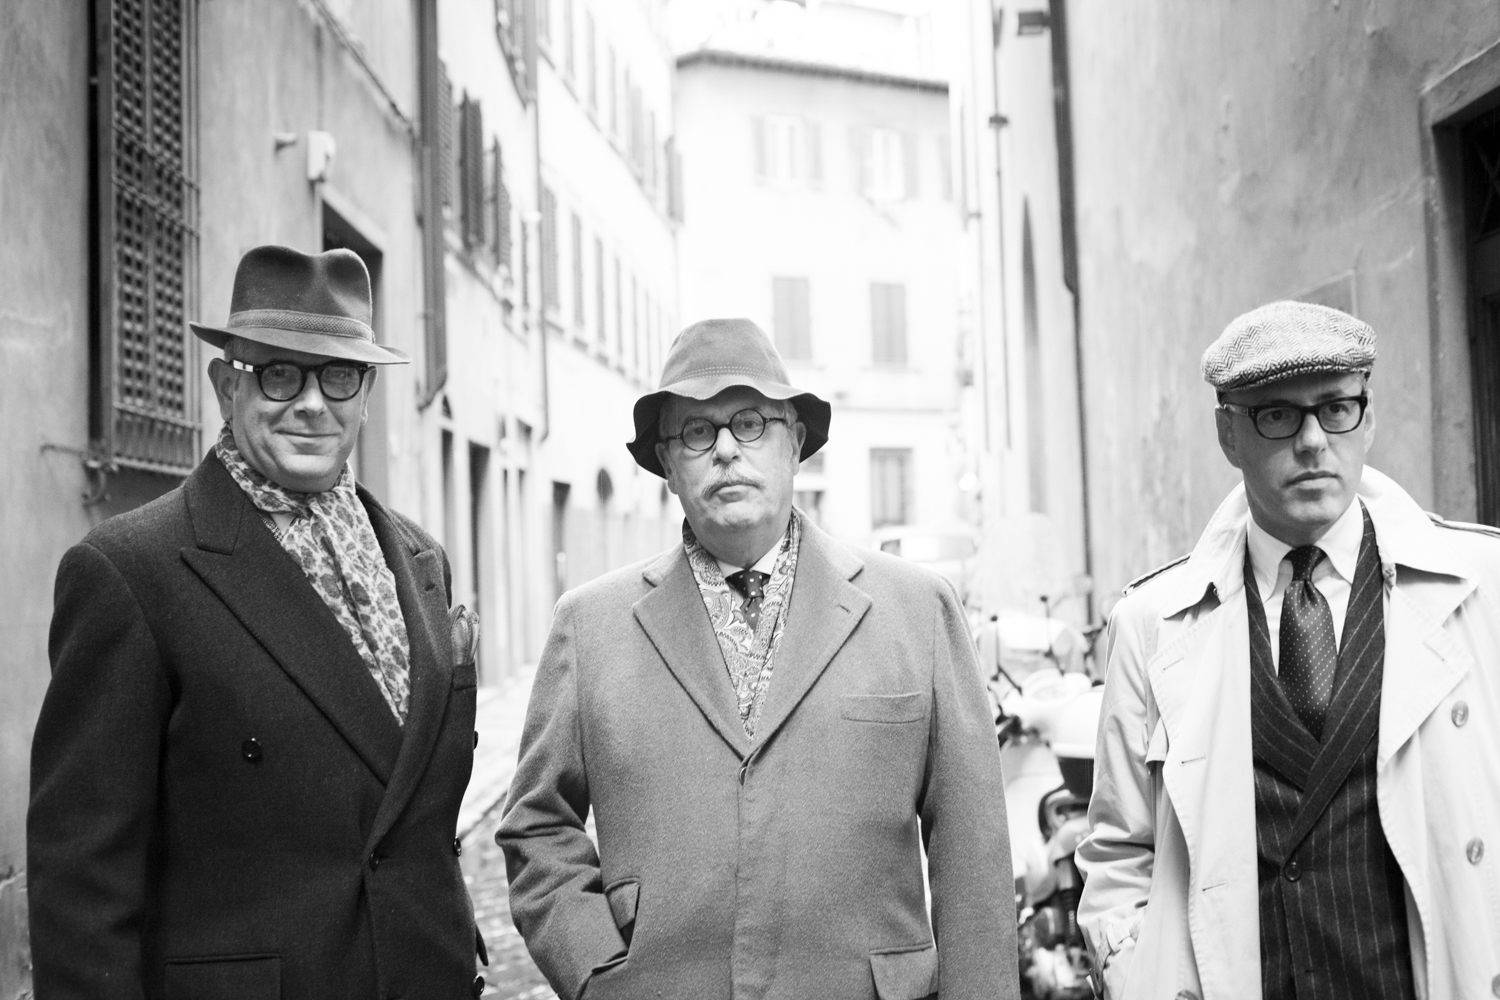 Stilemachile members Livious Brooler, Alfredo de Giglio, Mario Rossi photographed by Rose Callahan in Florence on Jan 14, 2016